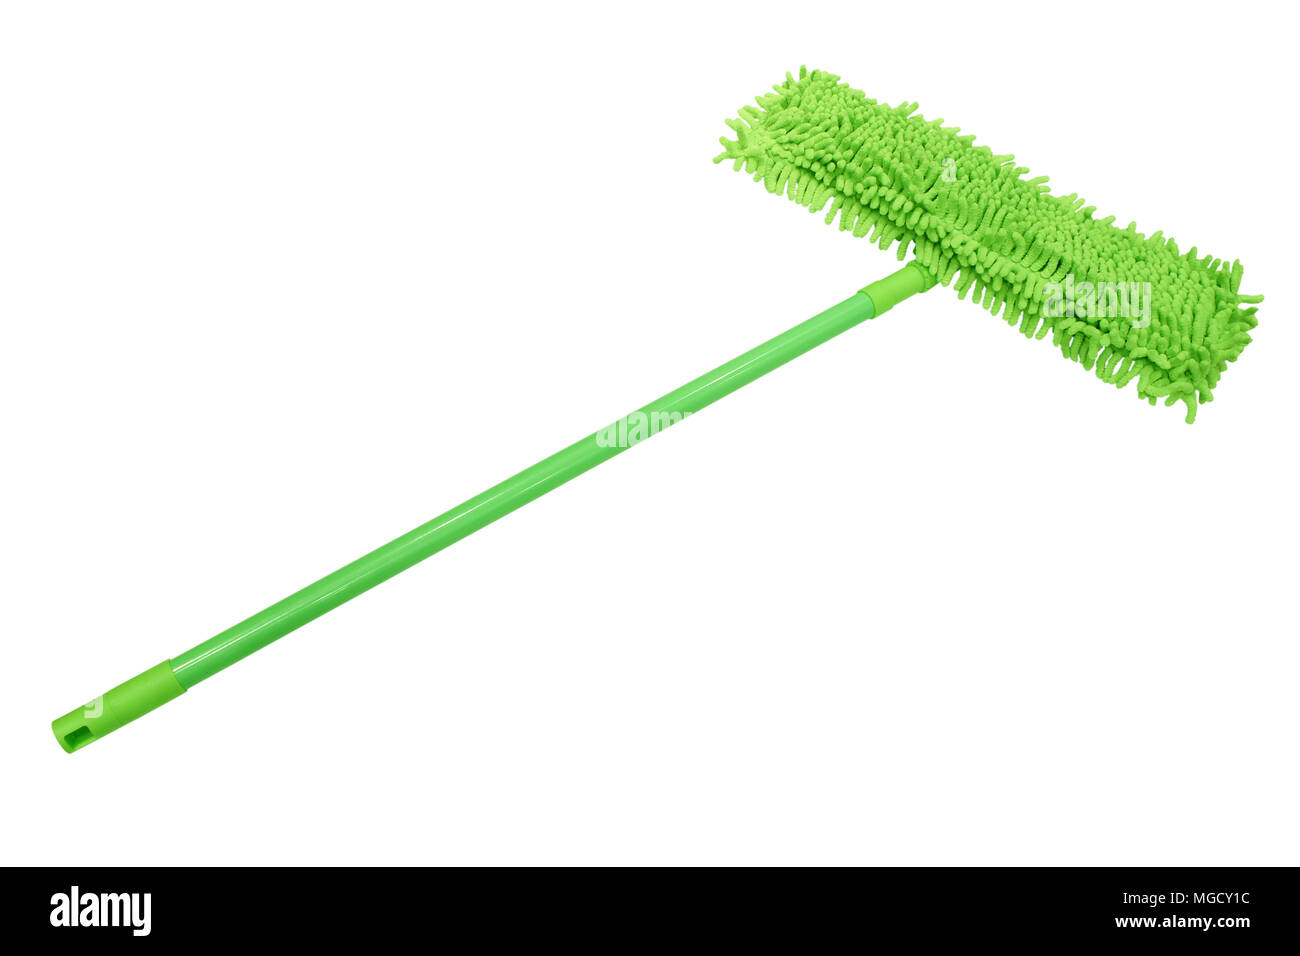 Green Microfiber mop with a plastic handle isolated on white background. - Stock Image